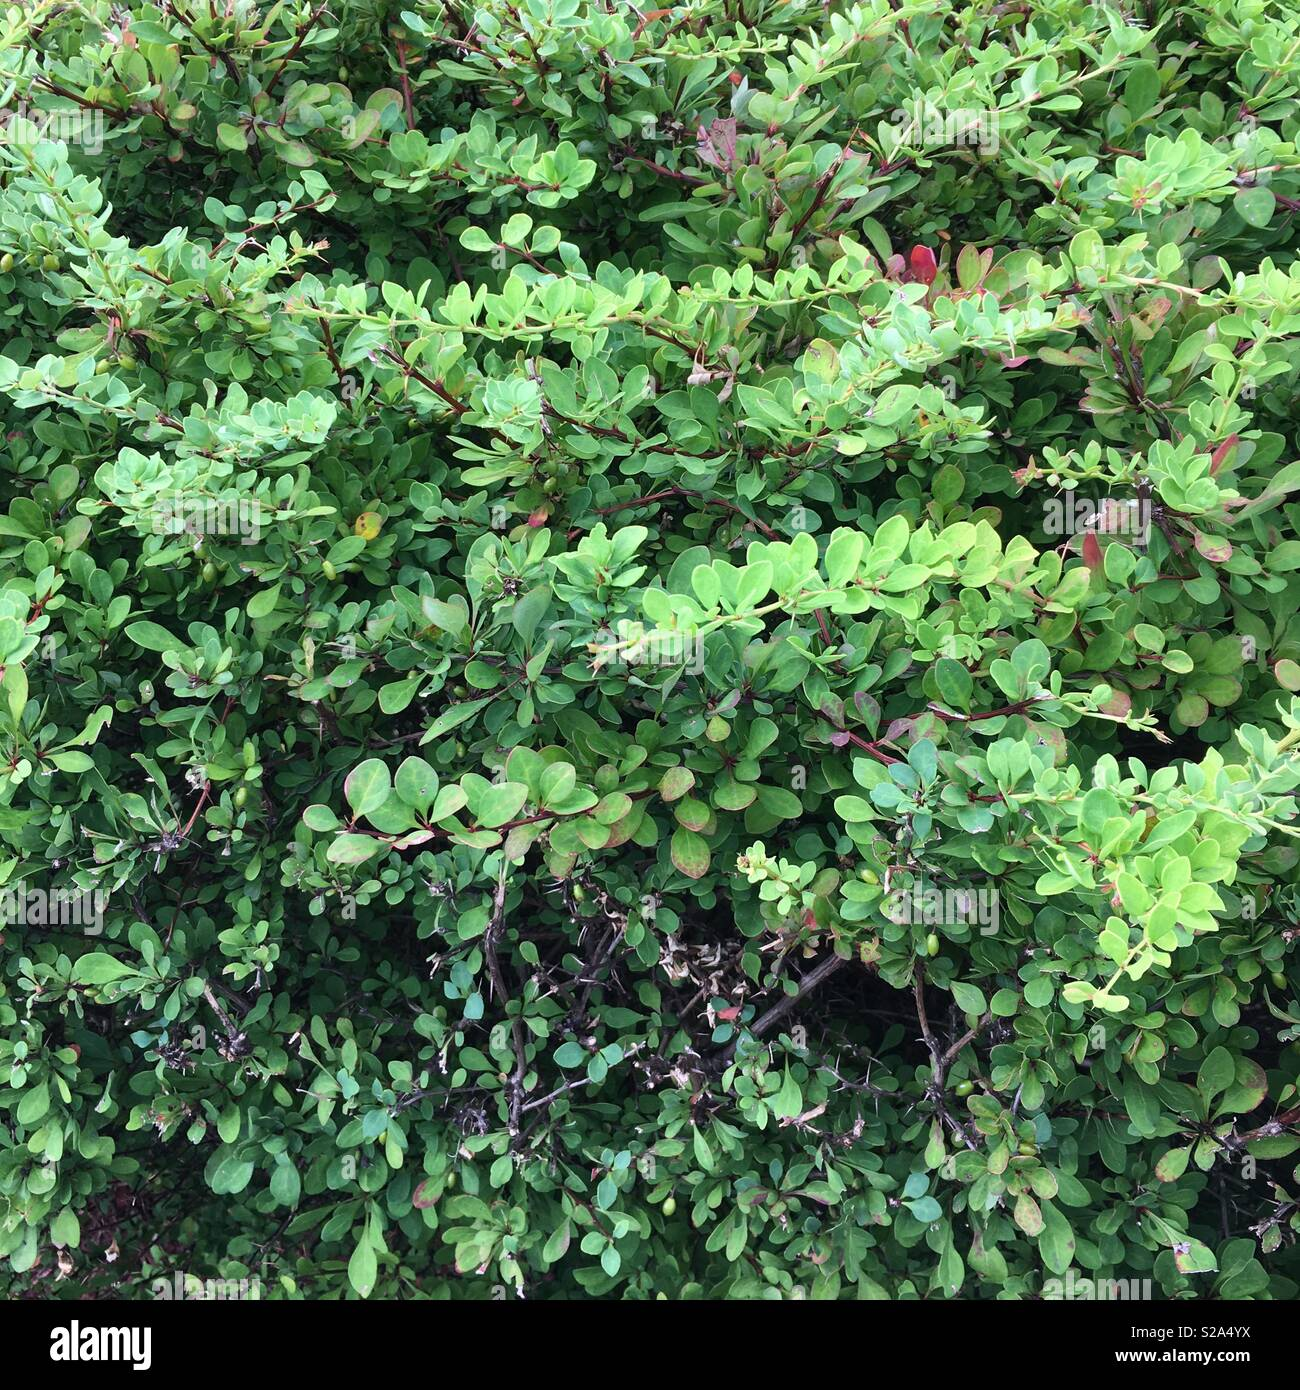 Shrubbery - Stock Image